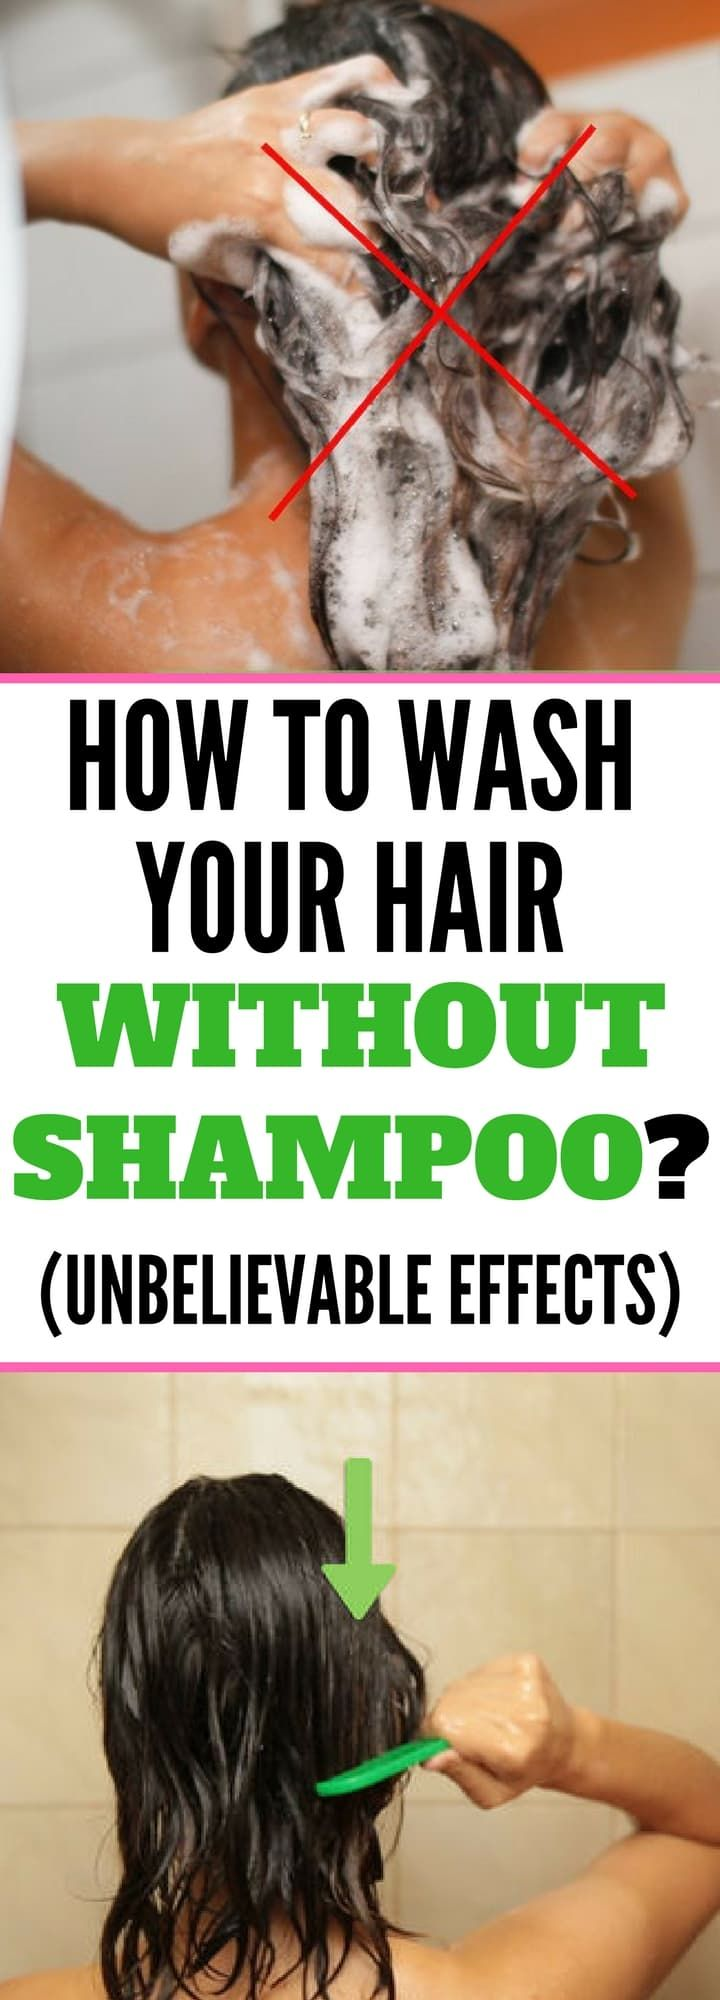 How to Wash Your Hair Without Shampoo? (Unbelievable